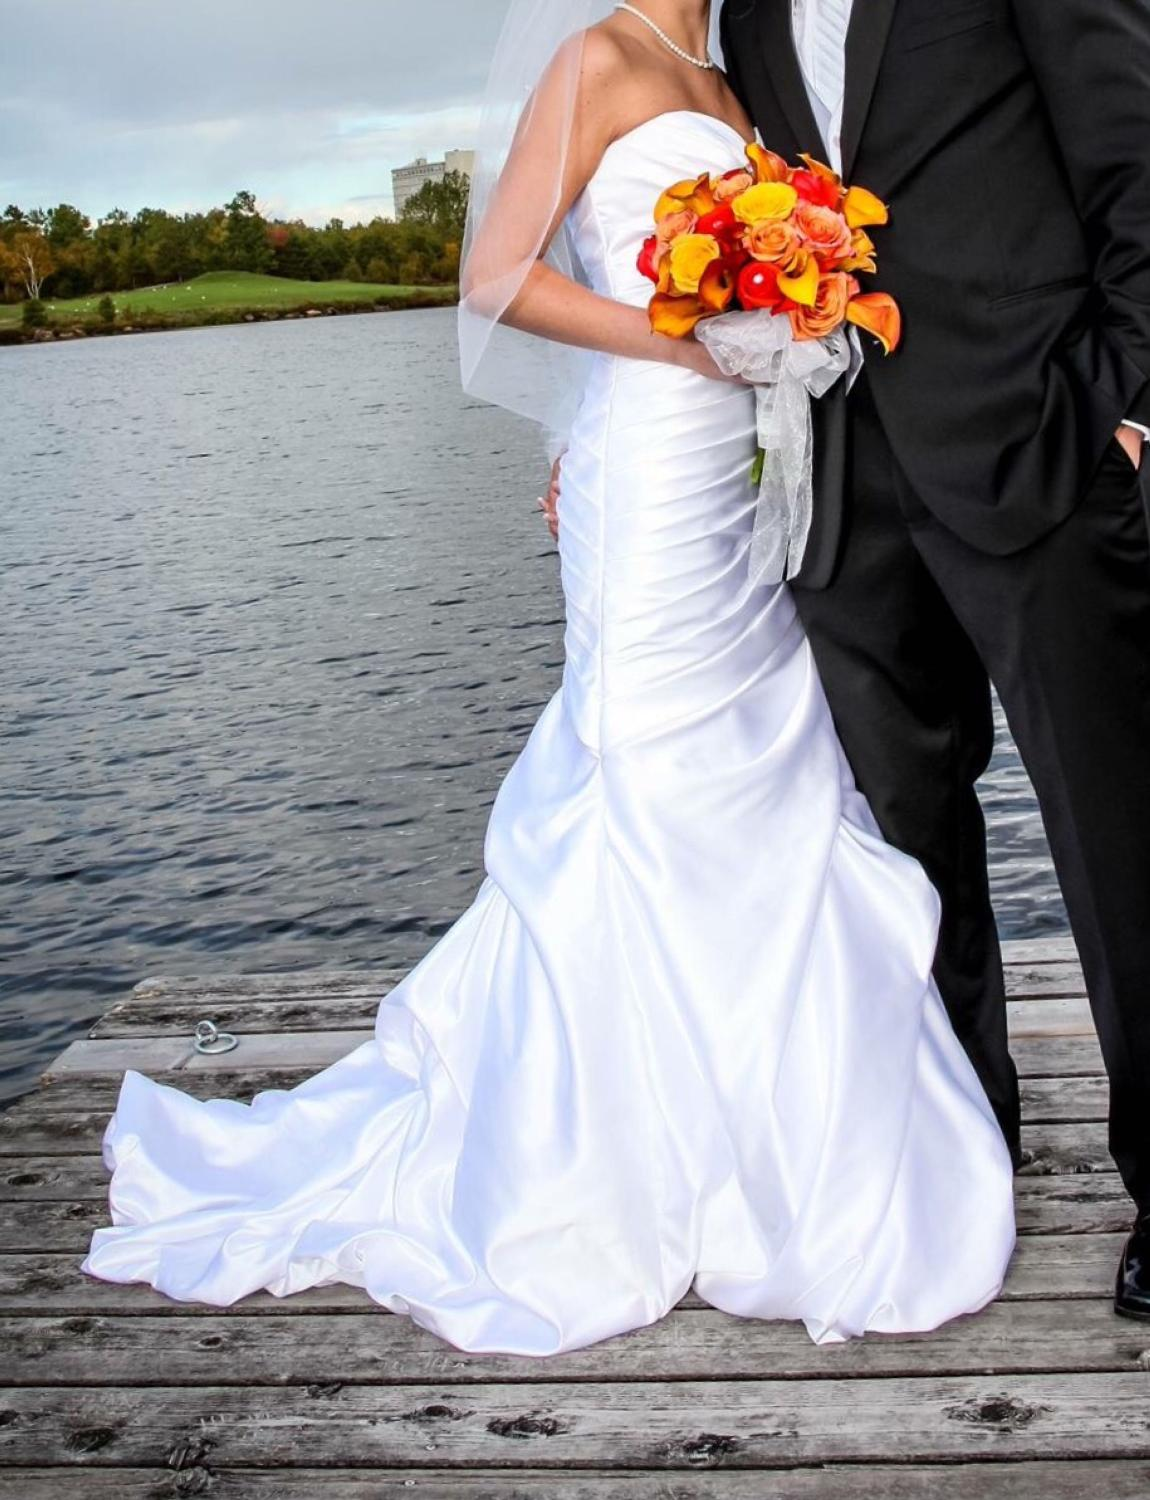 Best Ella Rosa Wedding Gown For Sale In Timmins Ontario For 2020